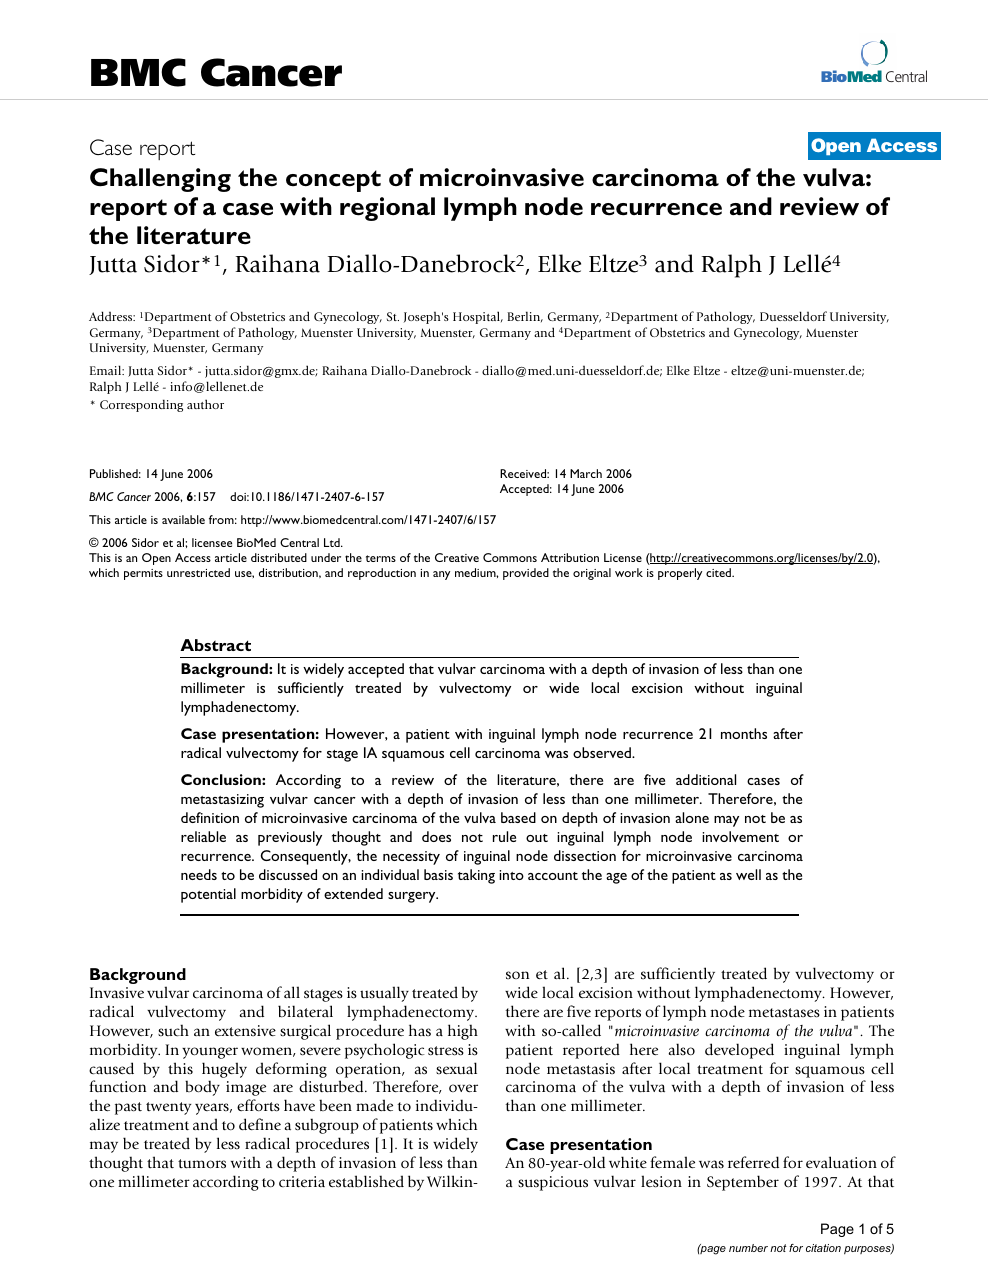 Challenging the concept of microinvasive carcinoma of the vulva